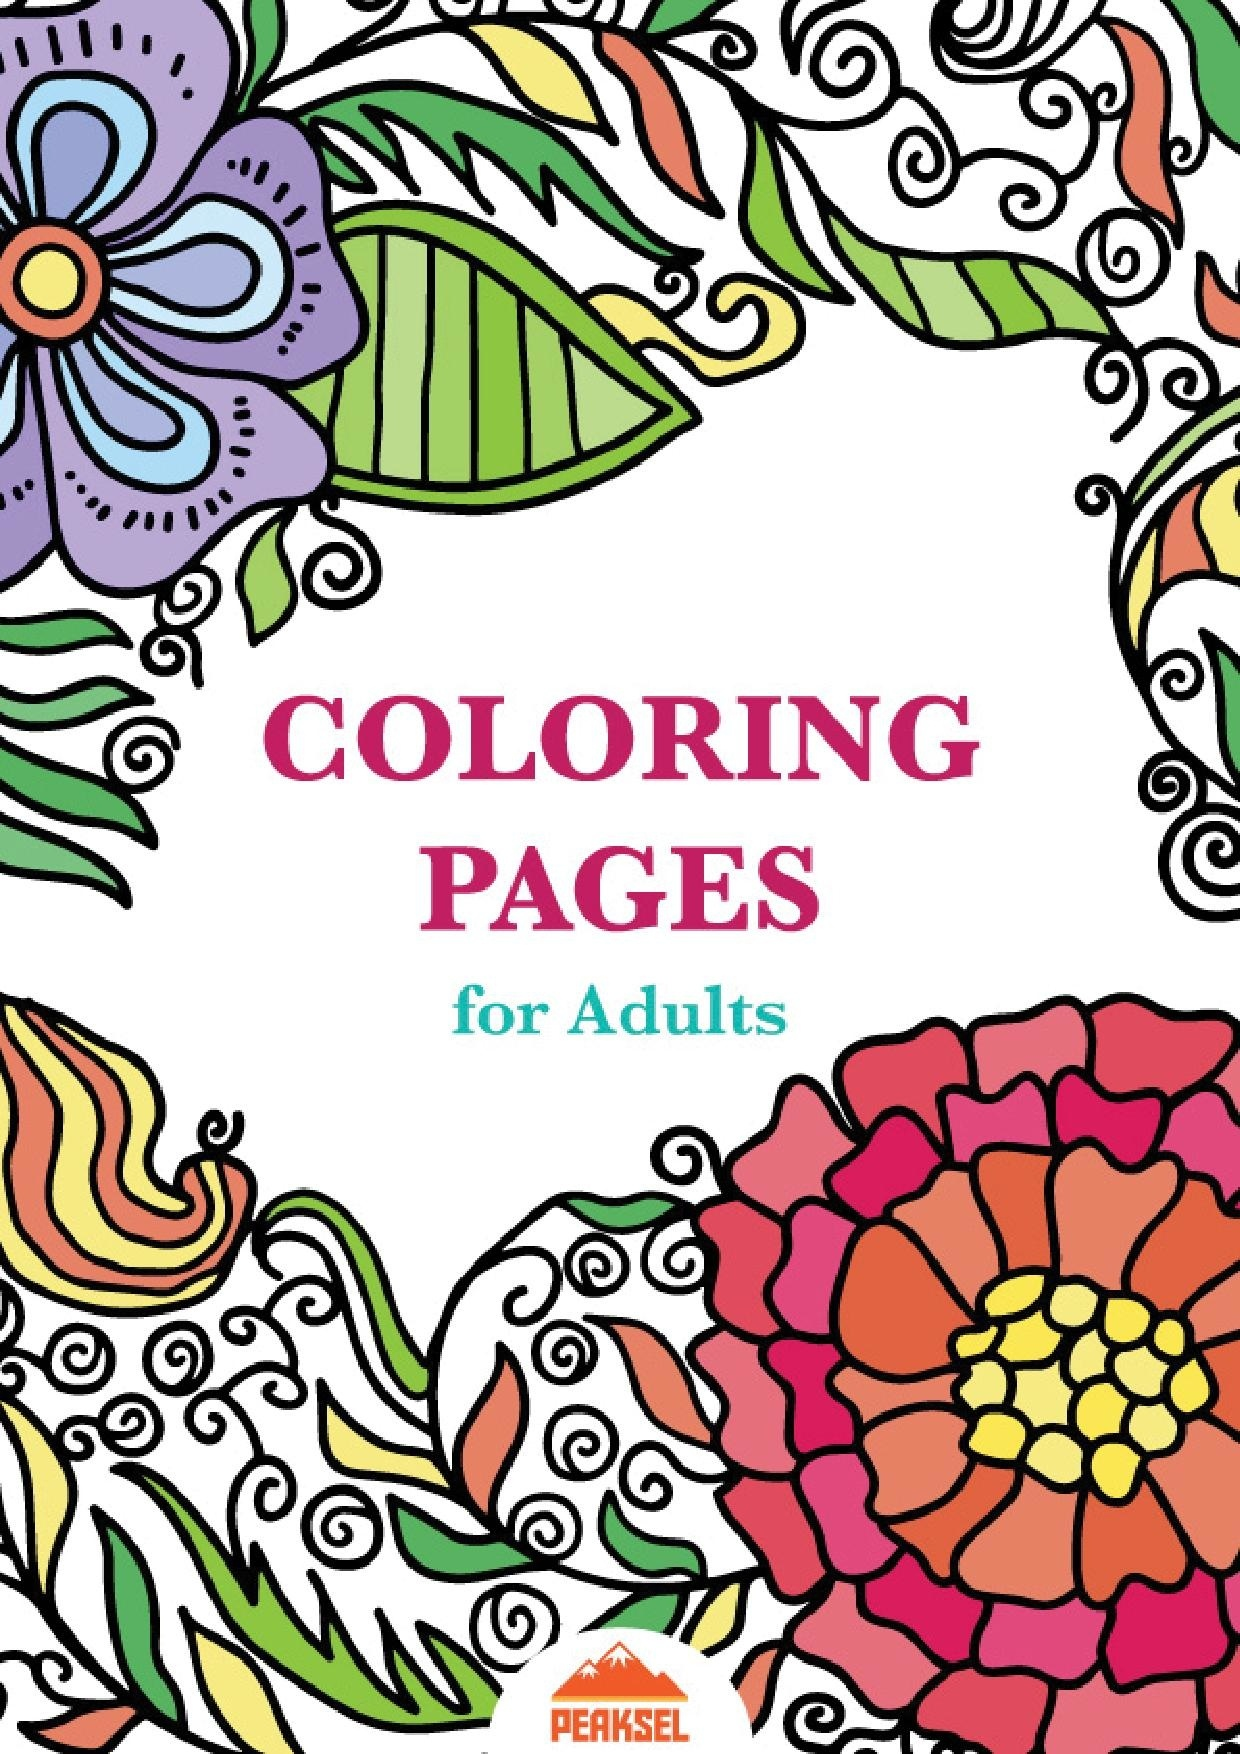 File:printable Coloring Pages For Adults - Free Adult Coloring Book - Free Printable Coloring Books